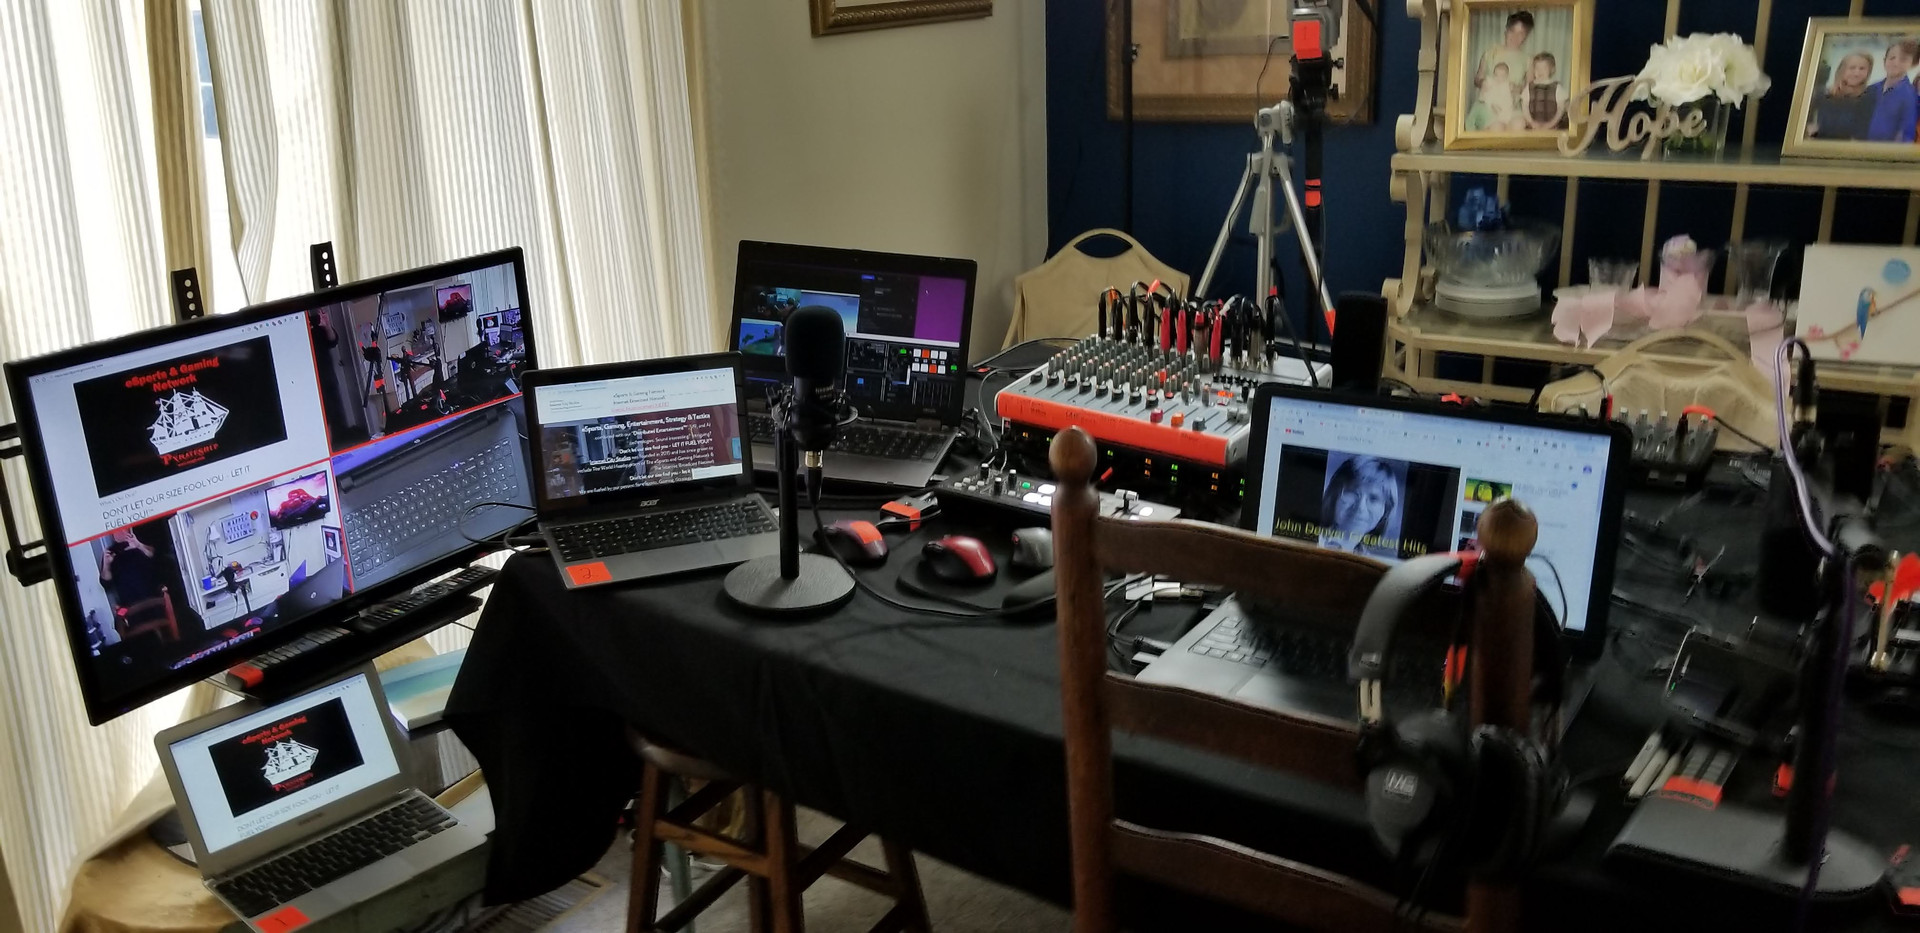 View of all the Equipment